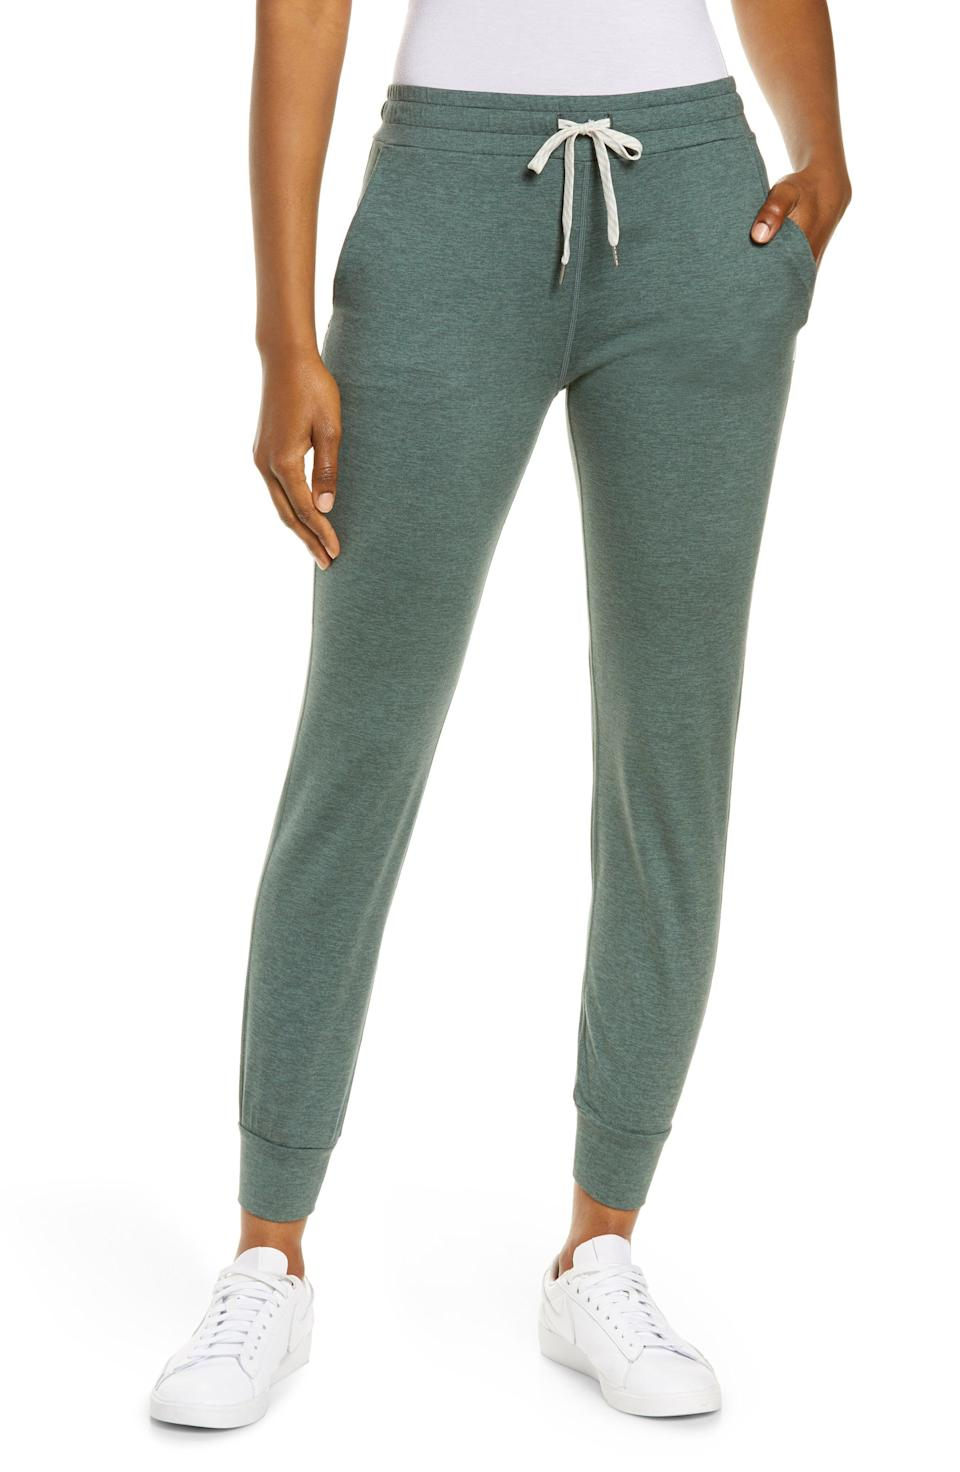 """<p><strong> Pocket Performance Joggers</strong></p><p>nordstrom.com</p><p><strong>$84.00</strong></p><p><a href=""""https://go.redirectingat.com?id=74968X1596630&url=https%3A%2F%2Fwww.nordstrom.com%2Fs%2Fvuori-pocket-performance-joggers%2F5093594&sref=https%3A%2F%2Fwww.prevention.com%2Ffitness%2Fworkout-clothes-gear%2Fg36840253%2Fbest-athleisure-brands%2F"""" rel=""""nofollow noopener"""" target=""""_blank"""" data-ylk=""""slk:Shop Now"""" class=""""link rapid-noclick-resp"""">Shop Now</a></p><p><strong><a href=""""https://go.redirectingat.com?id=74968X1596630&url=https%3A%2F%2Fwww.nordstrom.com%2Fbrands%2Fvuori--12572%3Forigin%3DproductBrandLink&sref=https%3A%2F%2Fwww.prevention.com%2Ffitness%2Fworkout-clothes-gear%2Fg36840253%2Fbest-athleisure-brands%2F"""" rel=""""nofollow noopener"""" target=""""_blank"""" data-ylk=""""slk:Vuori"""" class=""""link rapid-noclick-resp"""">Vuori</a></strong> activewear is a joy to wear and a joy to behold, thanks to its rich colors, luxurious fabrics, and modern design. Its <a href=""""https://go.redirectingat.com?id=74968X1596630&url=https%3A%2F%2Fwww.nordstrom.com%2Fs%2Fvuori-pocket-performance-joggers%2F5093594&sref=https%3A%2F%2Fwww.prevention.com%2Ffitness%2Fworkout-clothes-gear%2Fg36840253%2Fbest-athleisure-brands%2F"""" rel=""""nofollow noopener"""" target=""""_blank"""" data-ylk=""""slk:signature joggers"""" class=""""link rapid-noclick-resp"""">signature joggers</a> are a wardrobe staple, but so too are their performance tights and tops. The brand's <a href=""""https://go.redirectingat.com?id=74968X1596630&url=https%3A%2F%2Fwww.nordstrom.com%2Fs%2Fvuori-strato-slim-fit-crewneck-tech-t-shirt%2F4806427&sref=https%3A%2F%2Fwww.prevention.com%2Ffitness%2Fworkout-clothes-gear%2Fg36840253%2Fbest-athleisure-brands%2F"""" rel=""""nofollow noopener"""" target=""""_blank"""" data-ylk=""""slk:men's shirts"""" class=""""link rapid-noclick-resp"""">men's shirts</a> are also available in a range of beautiful tones to help dress up his athleisure game. </p>"""